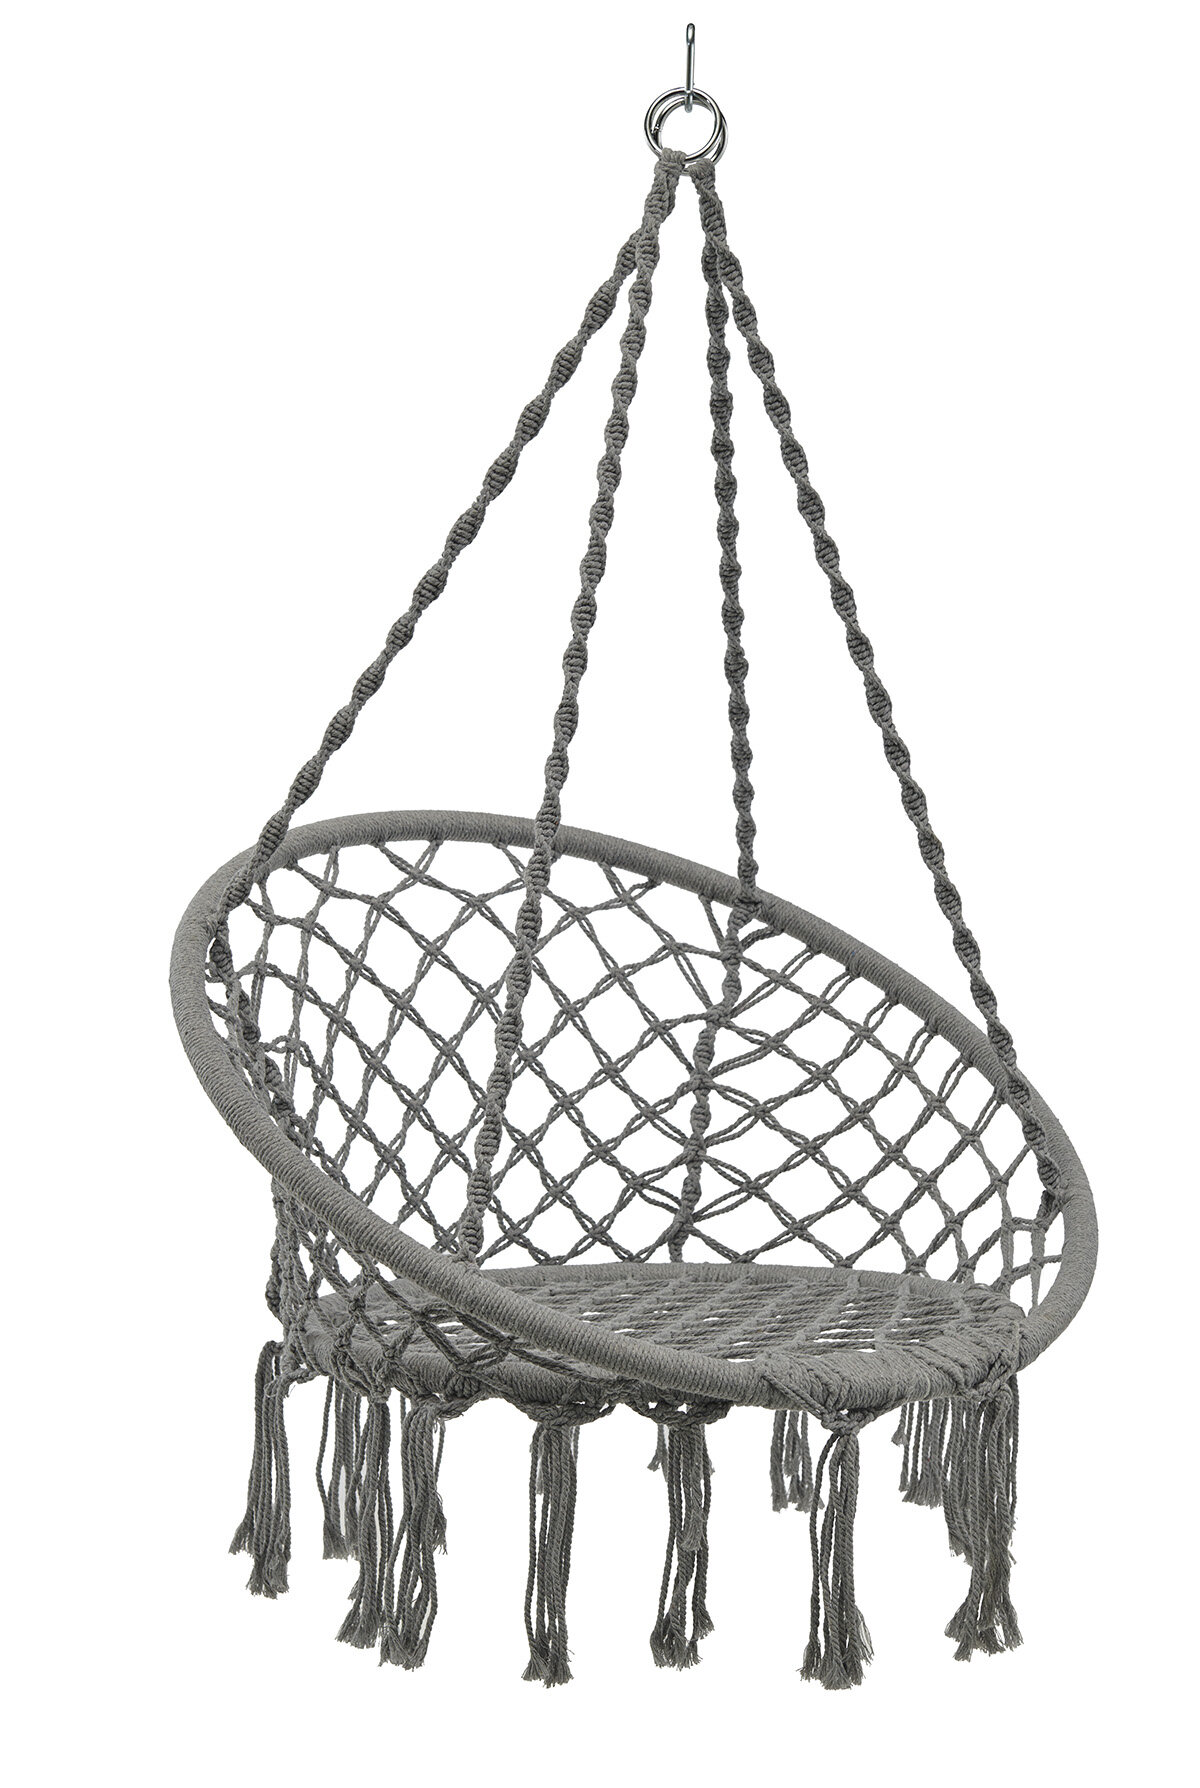 Dakota Fields Hammock Chair Swing Hanging Rope Seat Net Chair Tree Outdoor Porch Patio Indoor Grey Reviews Wayfair Ca